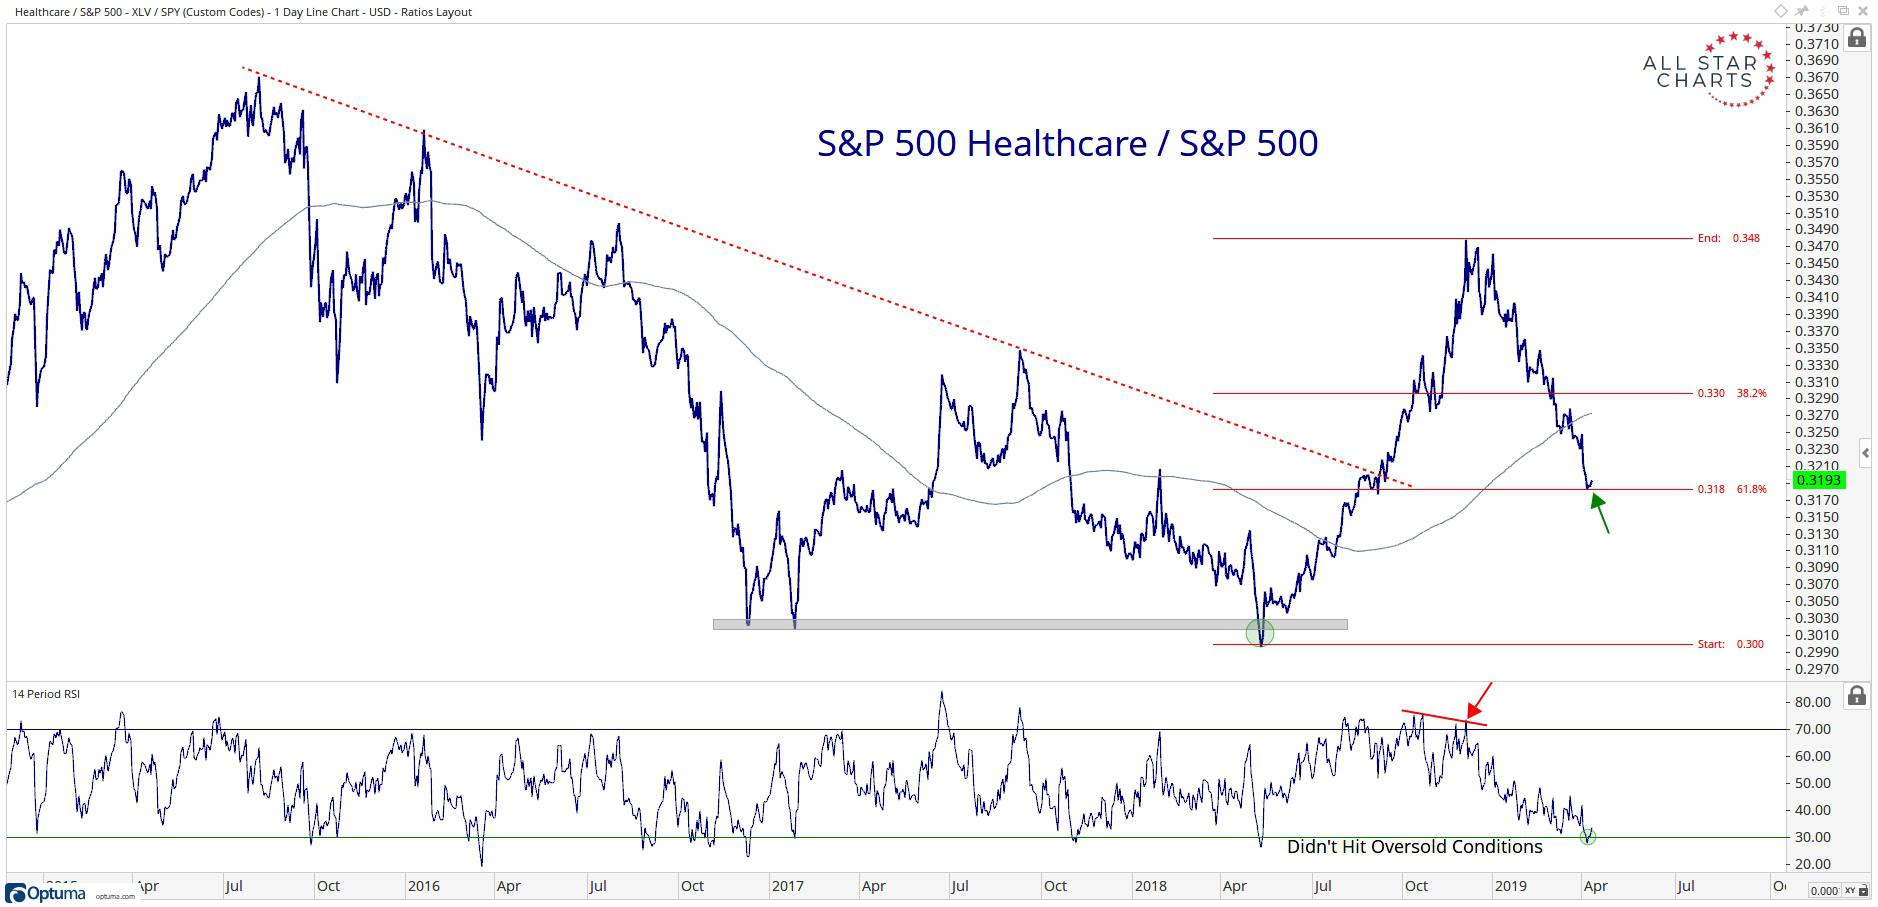 Potential Mean Reversion in Health Care Providers